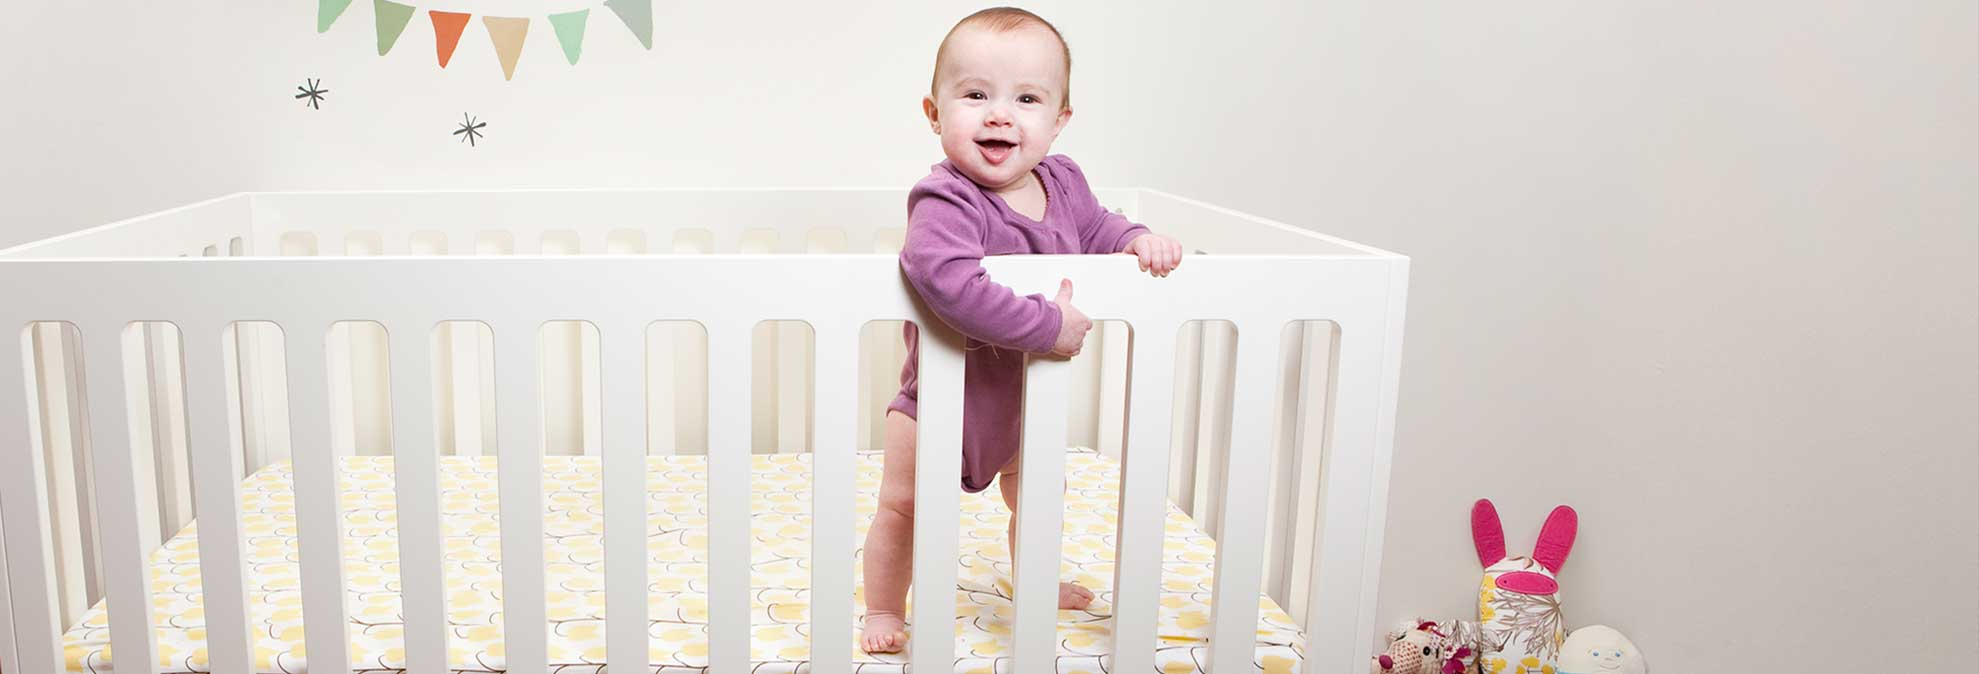 Baby cribs regulations canada - Baby Cribs Regulations Canada 24